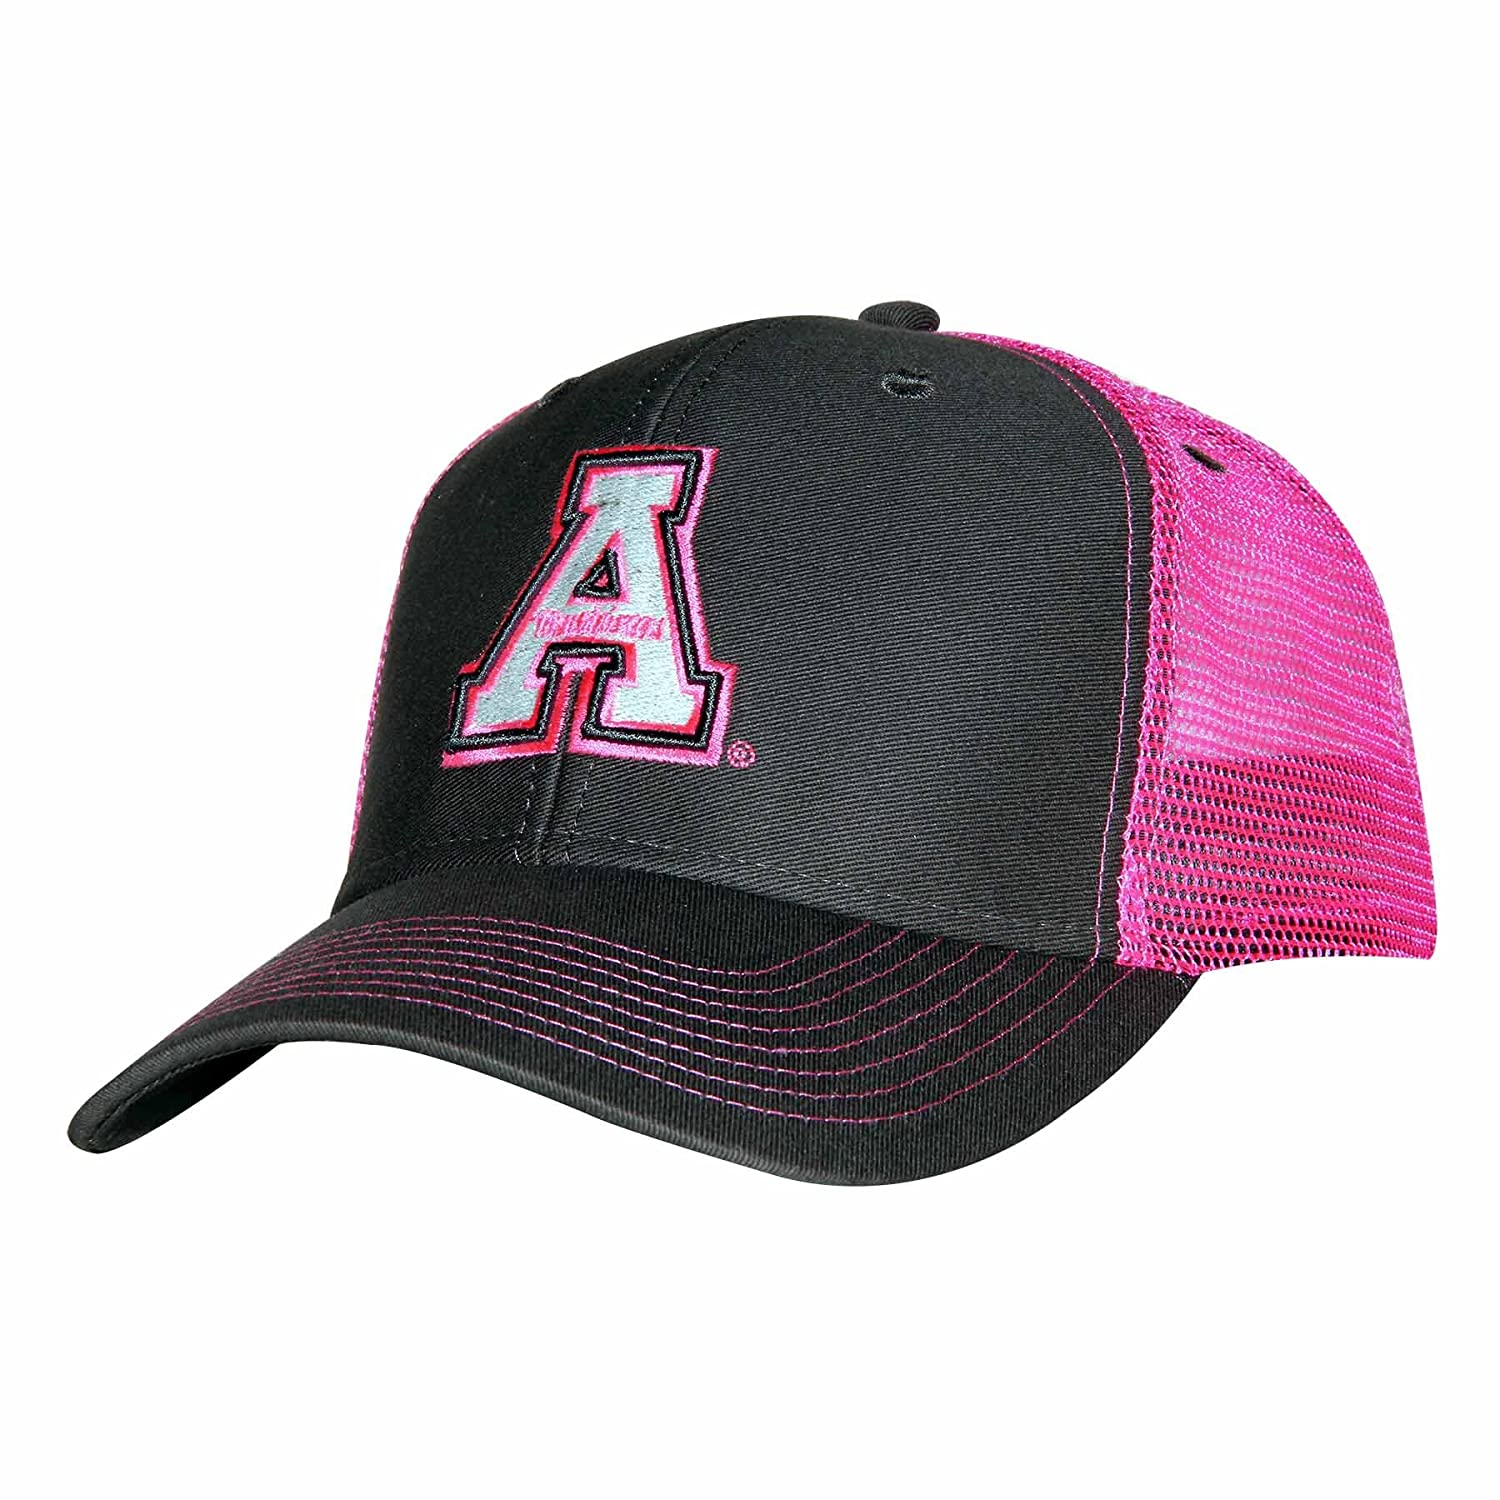 wholesale dealer b1c7f 44f70 Amazon.com   Ouray Sportswear NCAA Appalachian State Mountaineers Sideline  Cap, Adjustable Size, Dark Grey Neon Pink   Sports   Outdoors